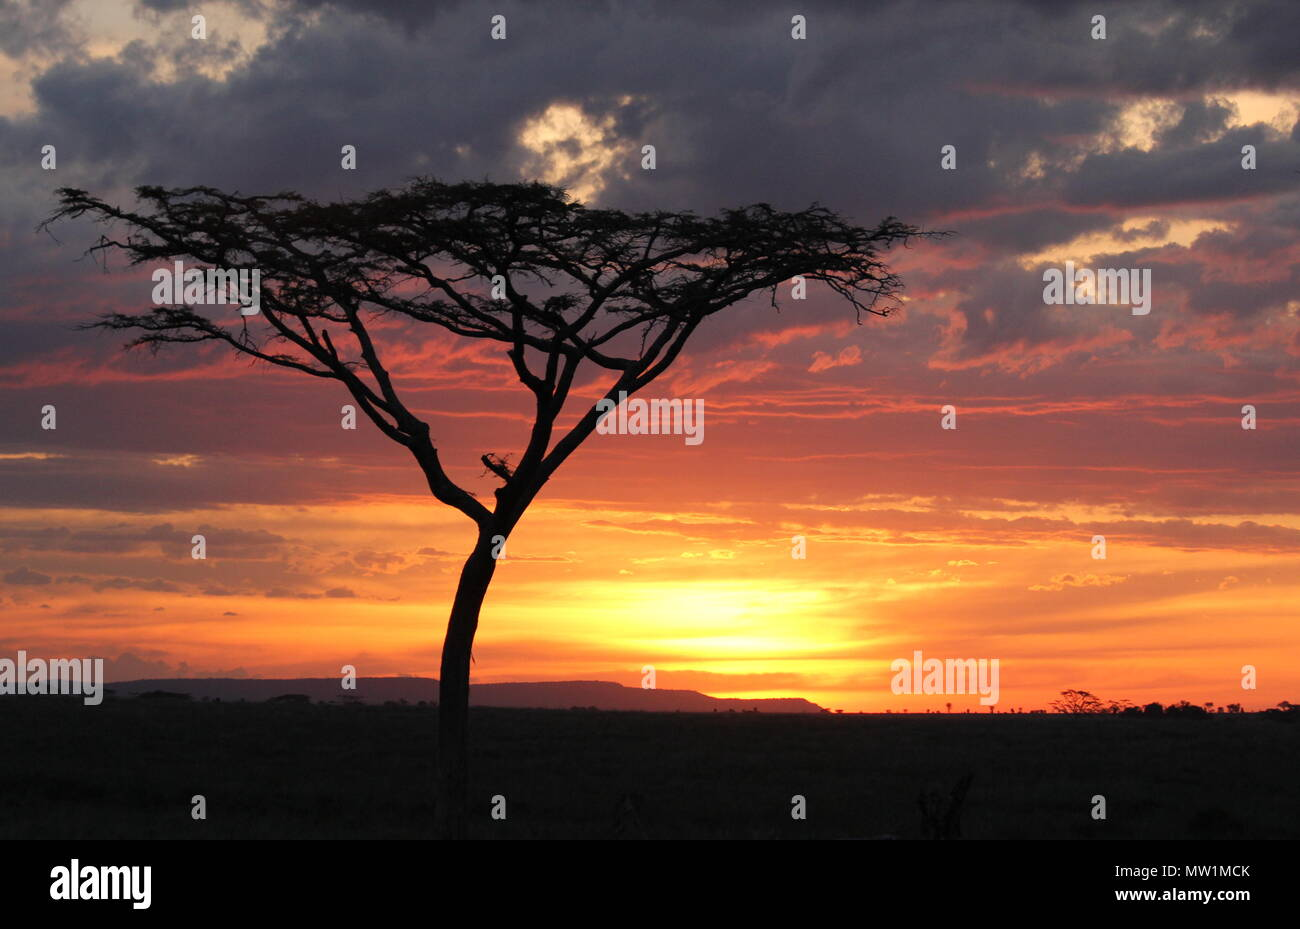 Shadows of trees in front of sunset on the African Savannah - Stock Image